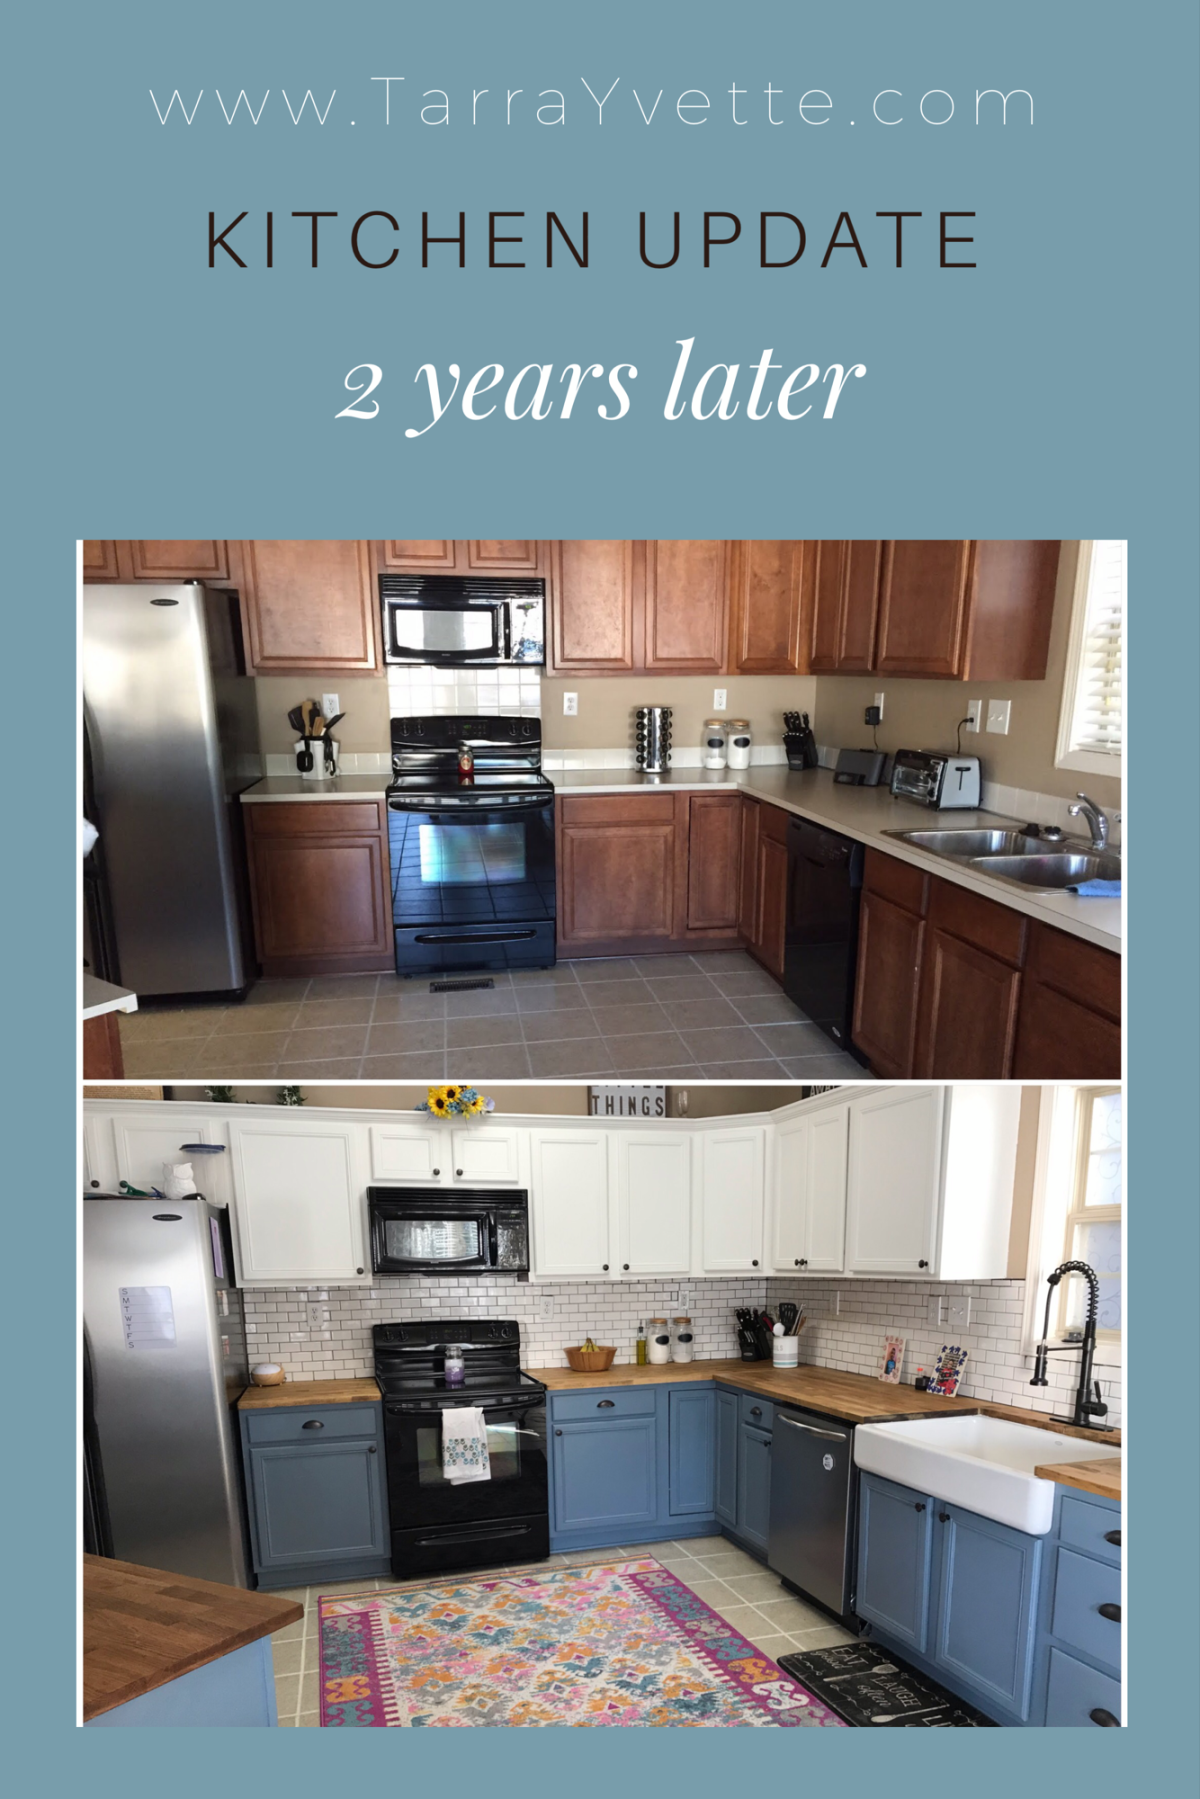 Kitchen Renovation – 2 year update